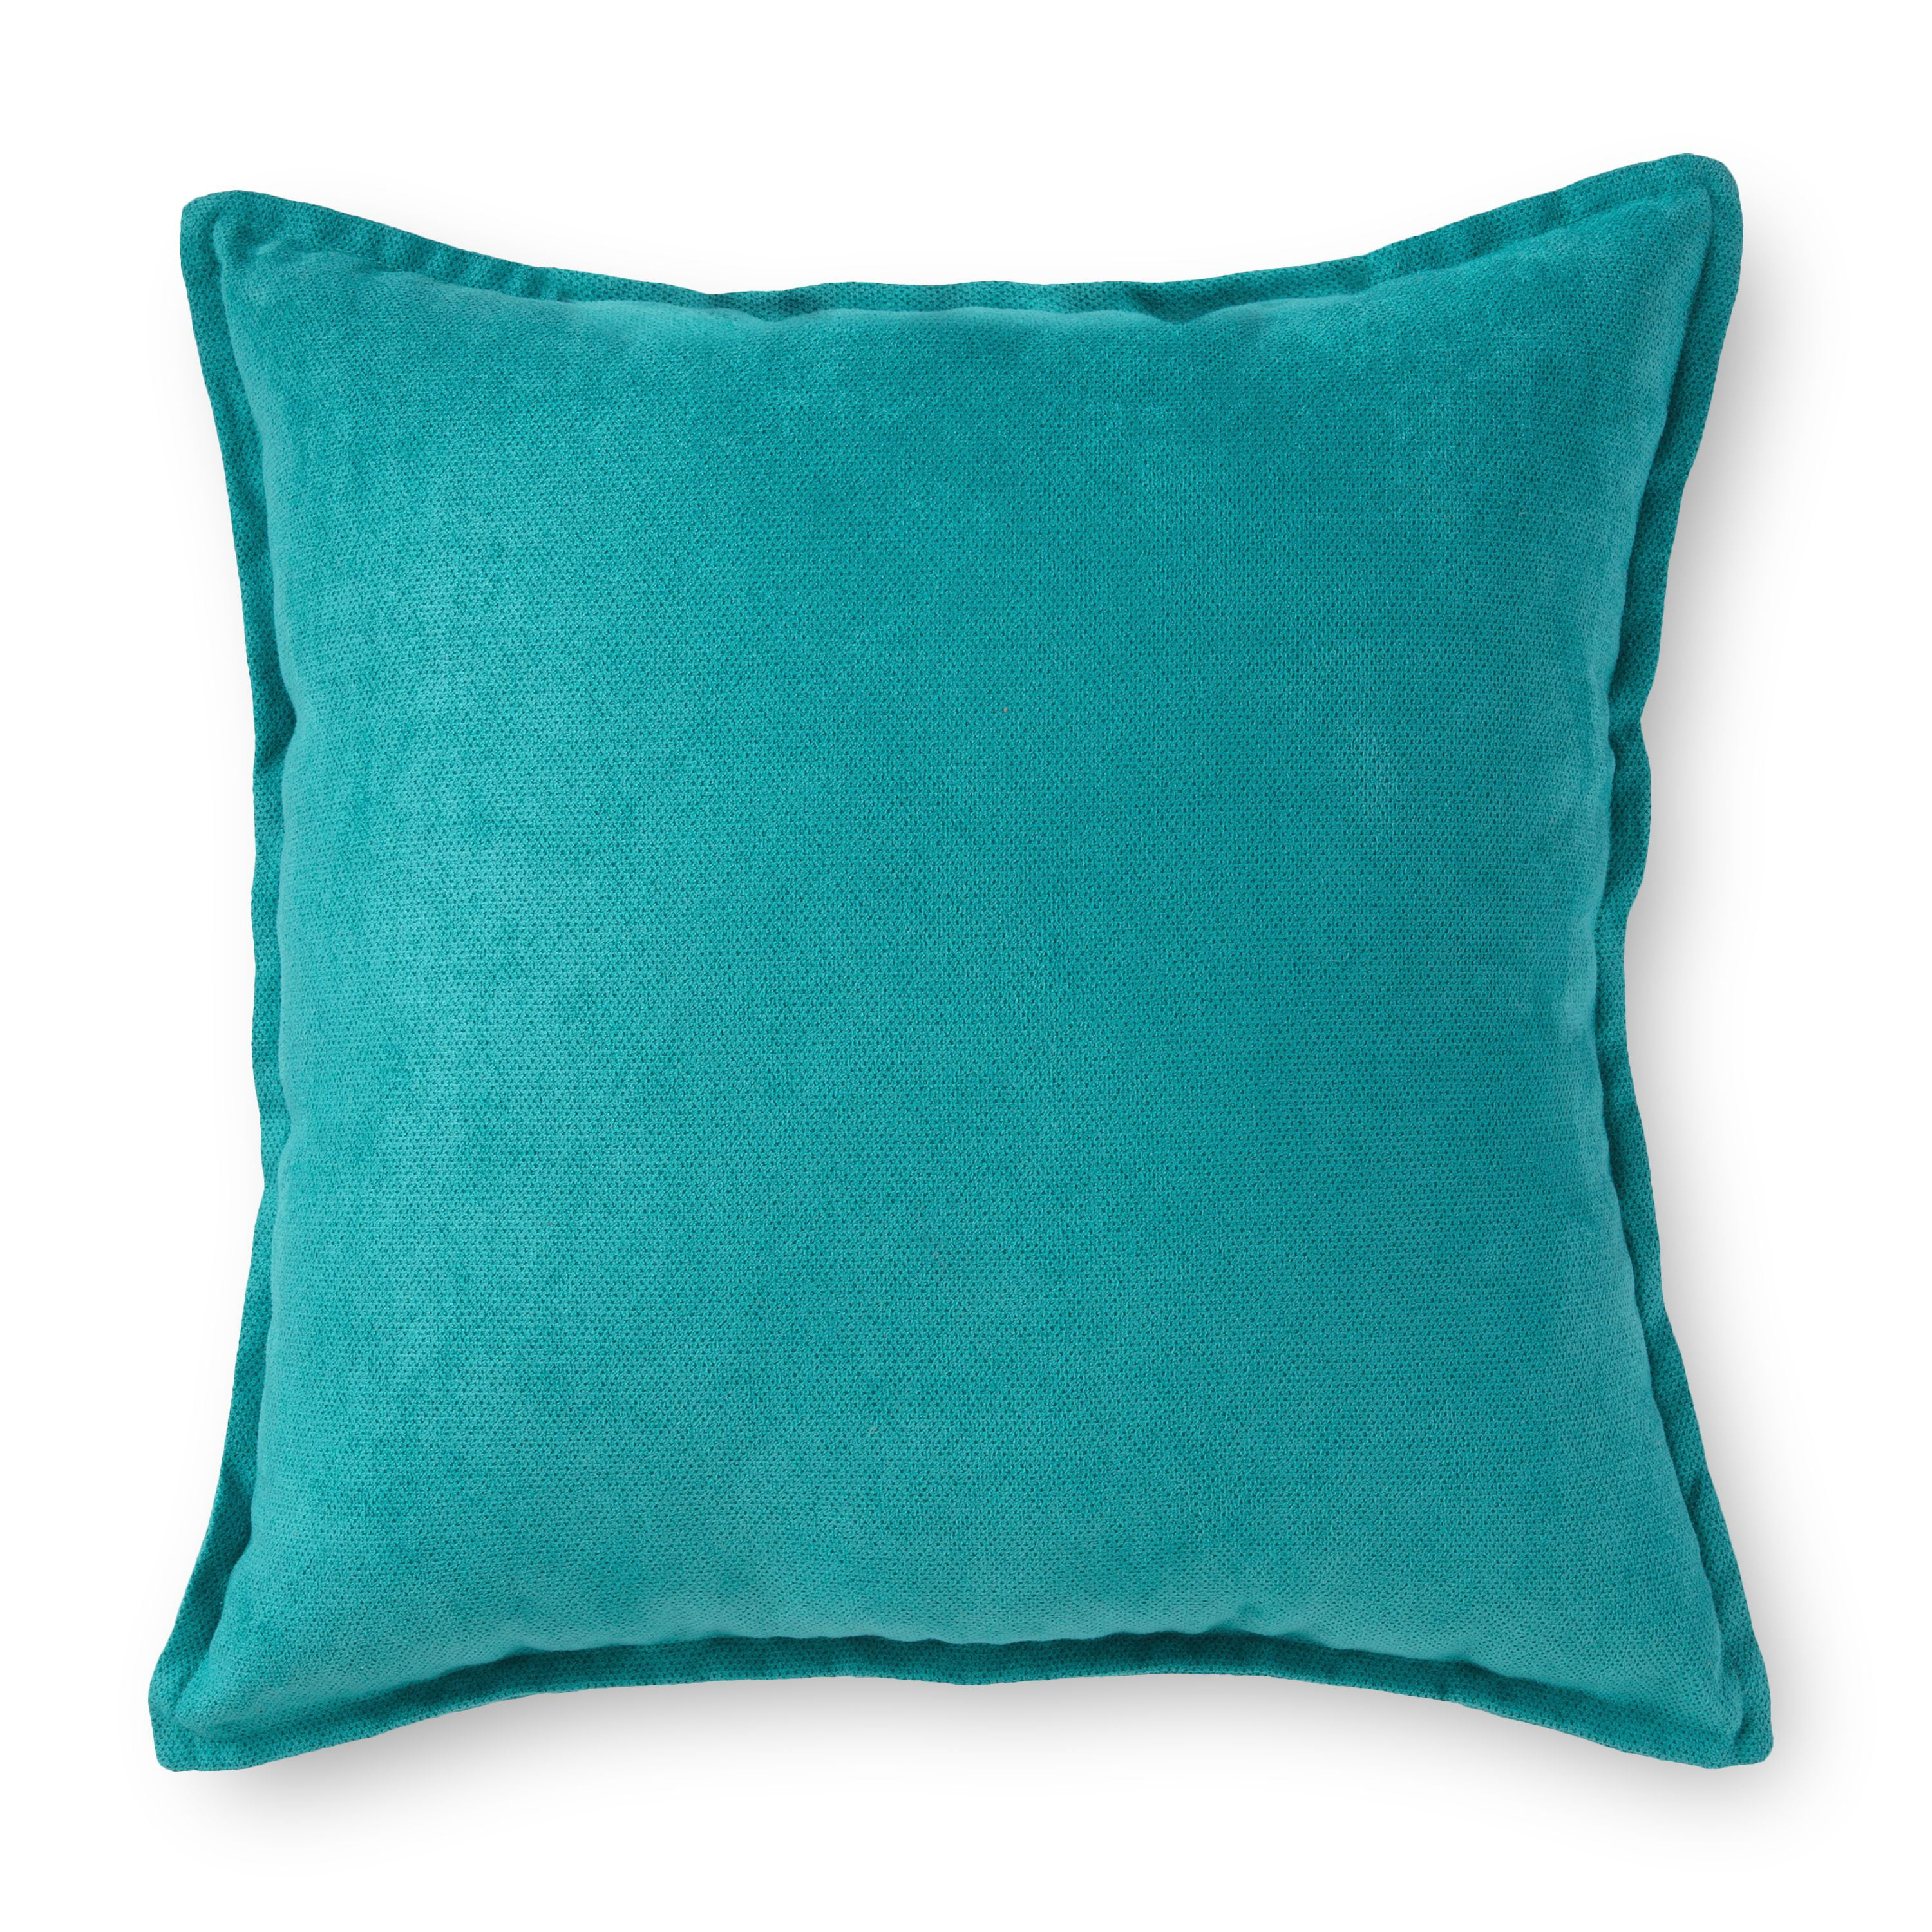 ArtVerse Katelyn Smith 26 x 26 Spun Polyester Delaware Pillow